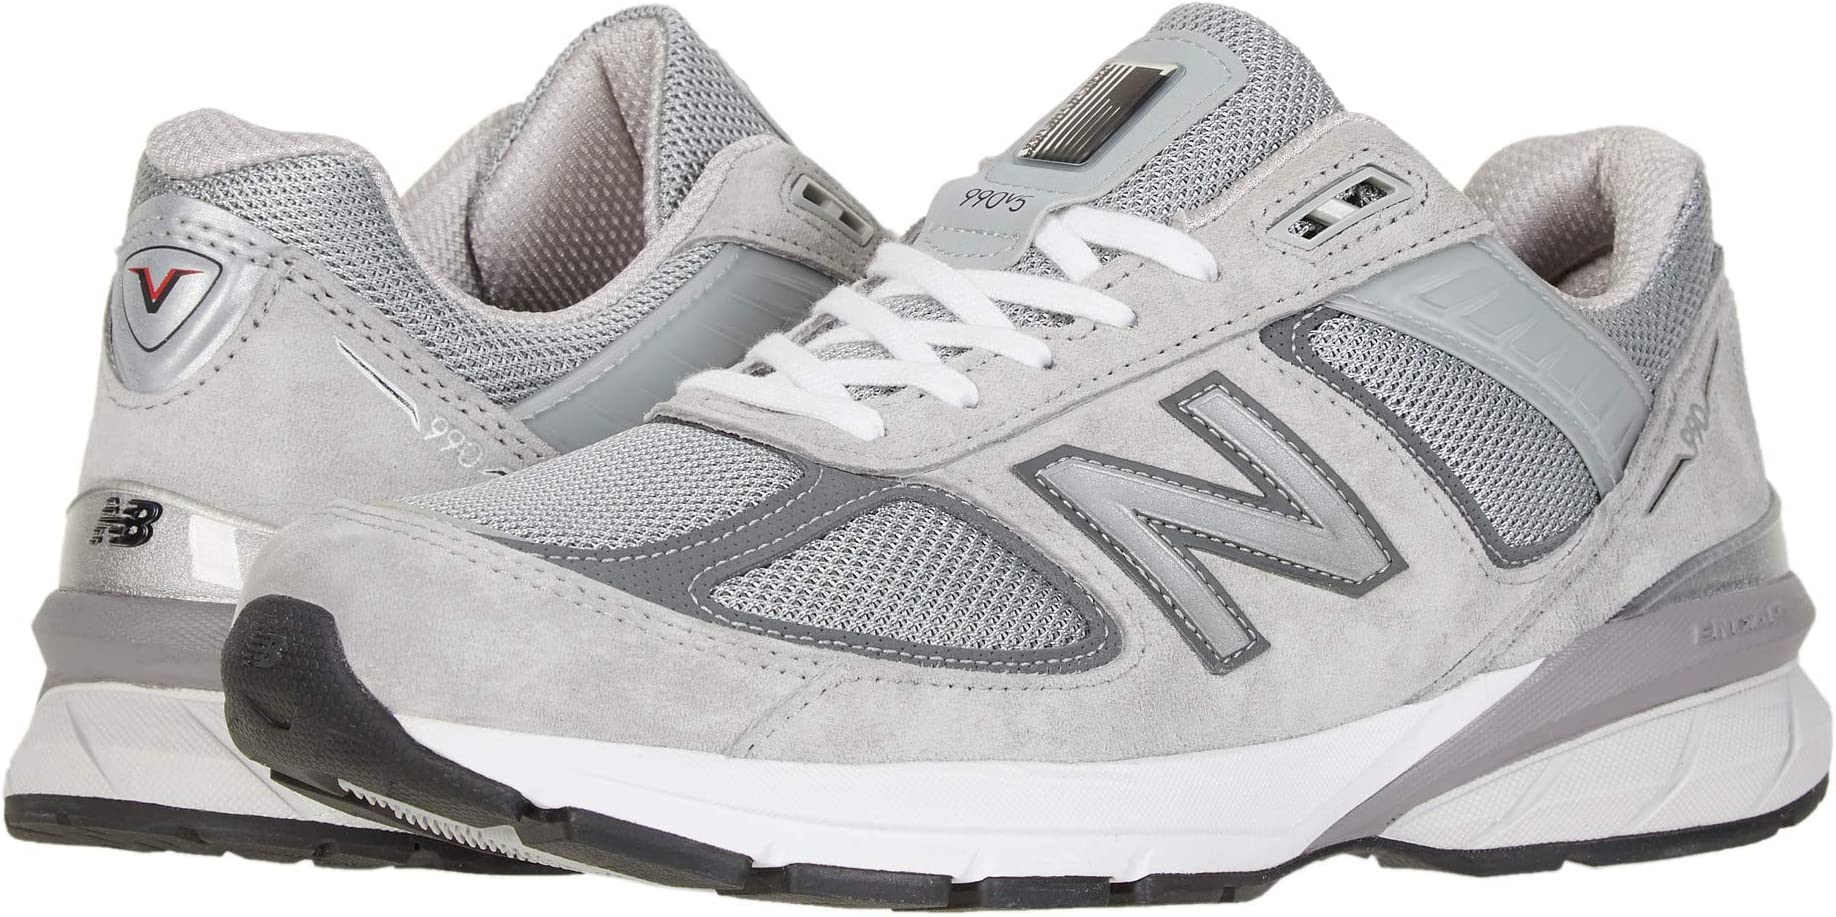 e0691ab4007ed Shop New Balance · Women's Shoes. Women's Clothing. Men's Shoes